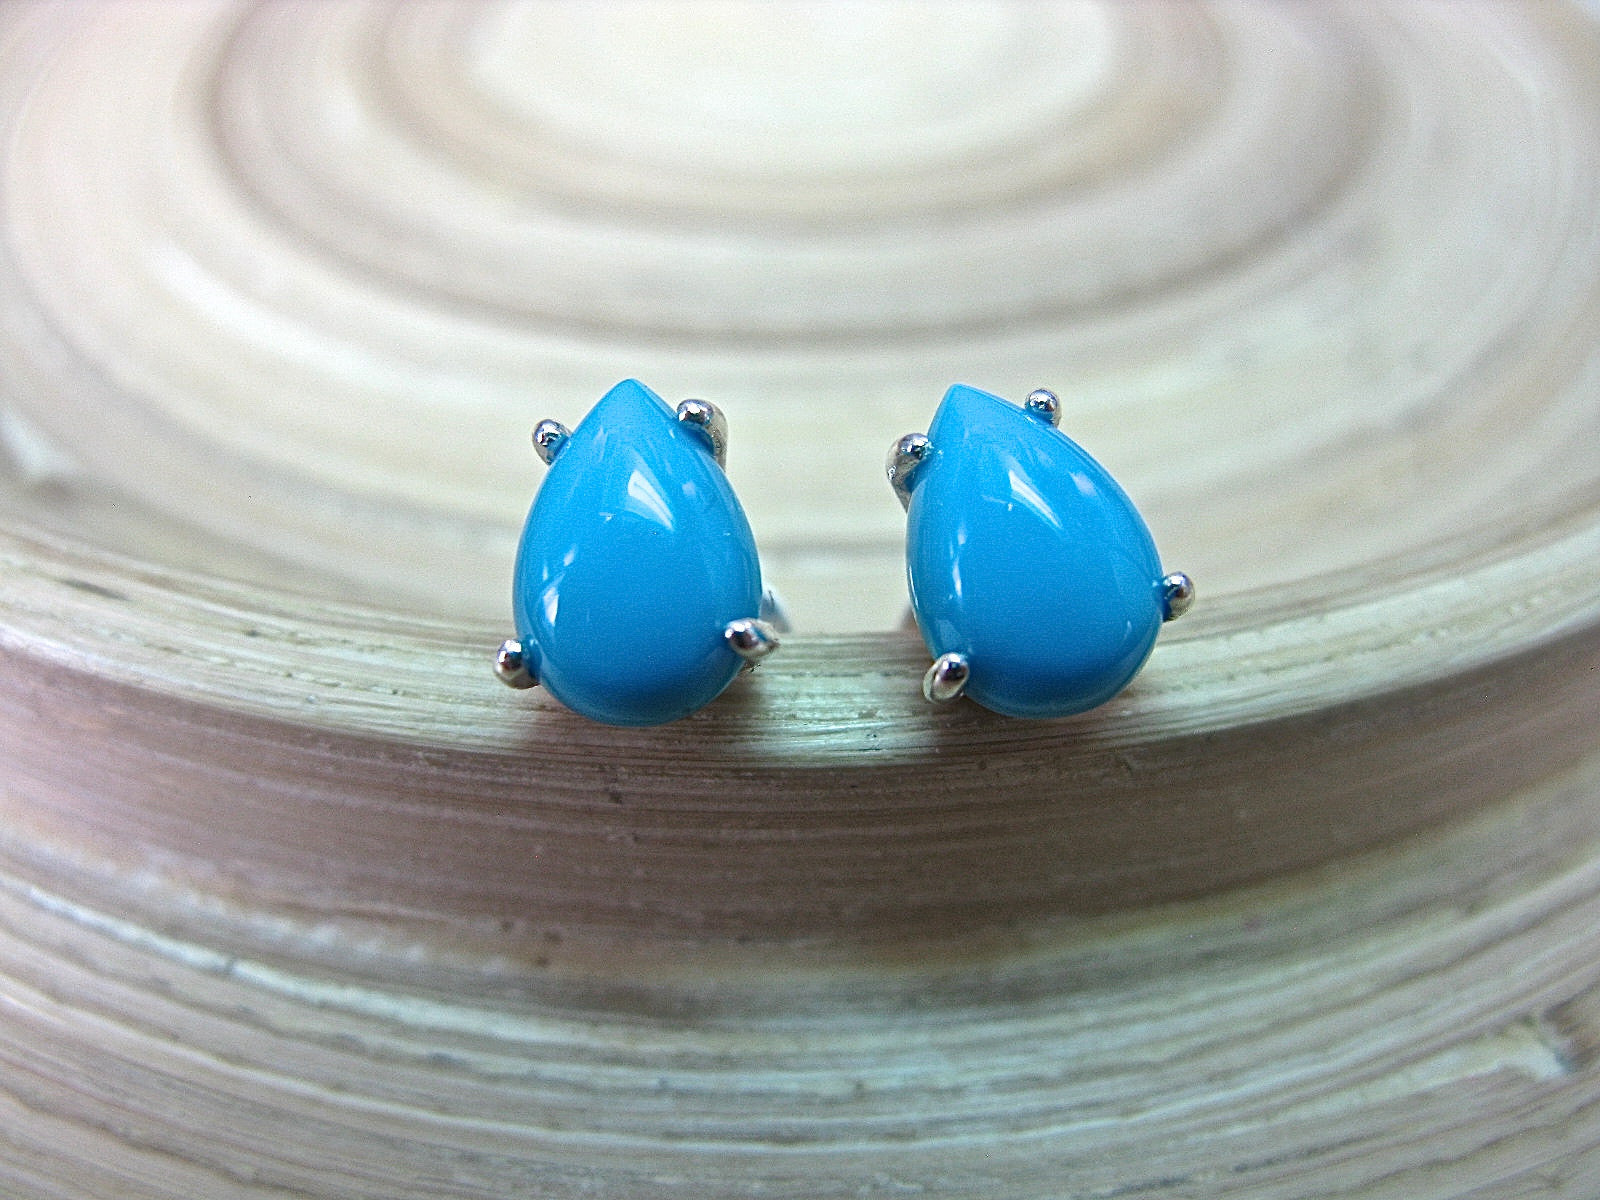 Turquoise Tear Drop Stud Earrings in 925 Sterling Silver Stud Faith Owl - Faith Owl